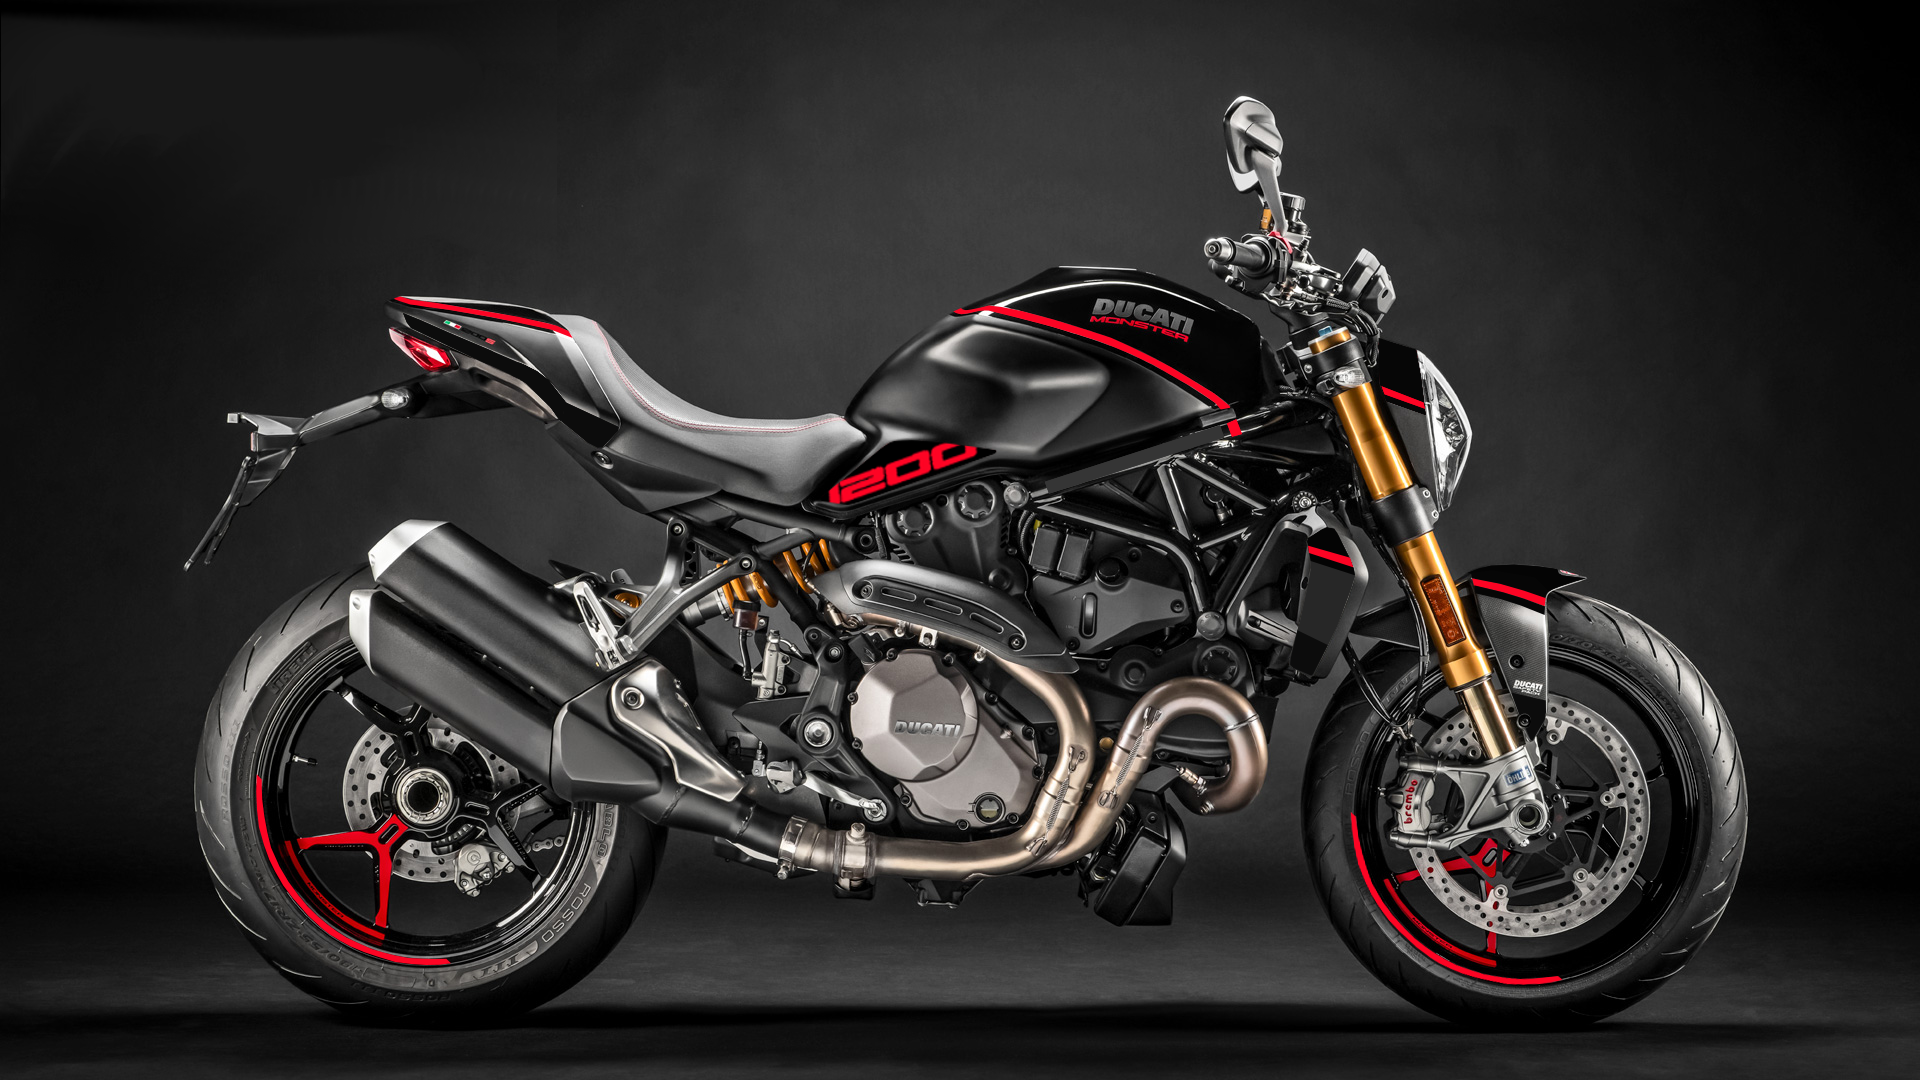 Foliendesign DUCATI  Monster 1200 Bj. 2020 Racing Red